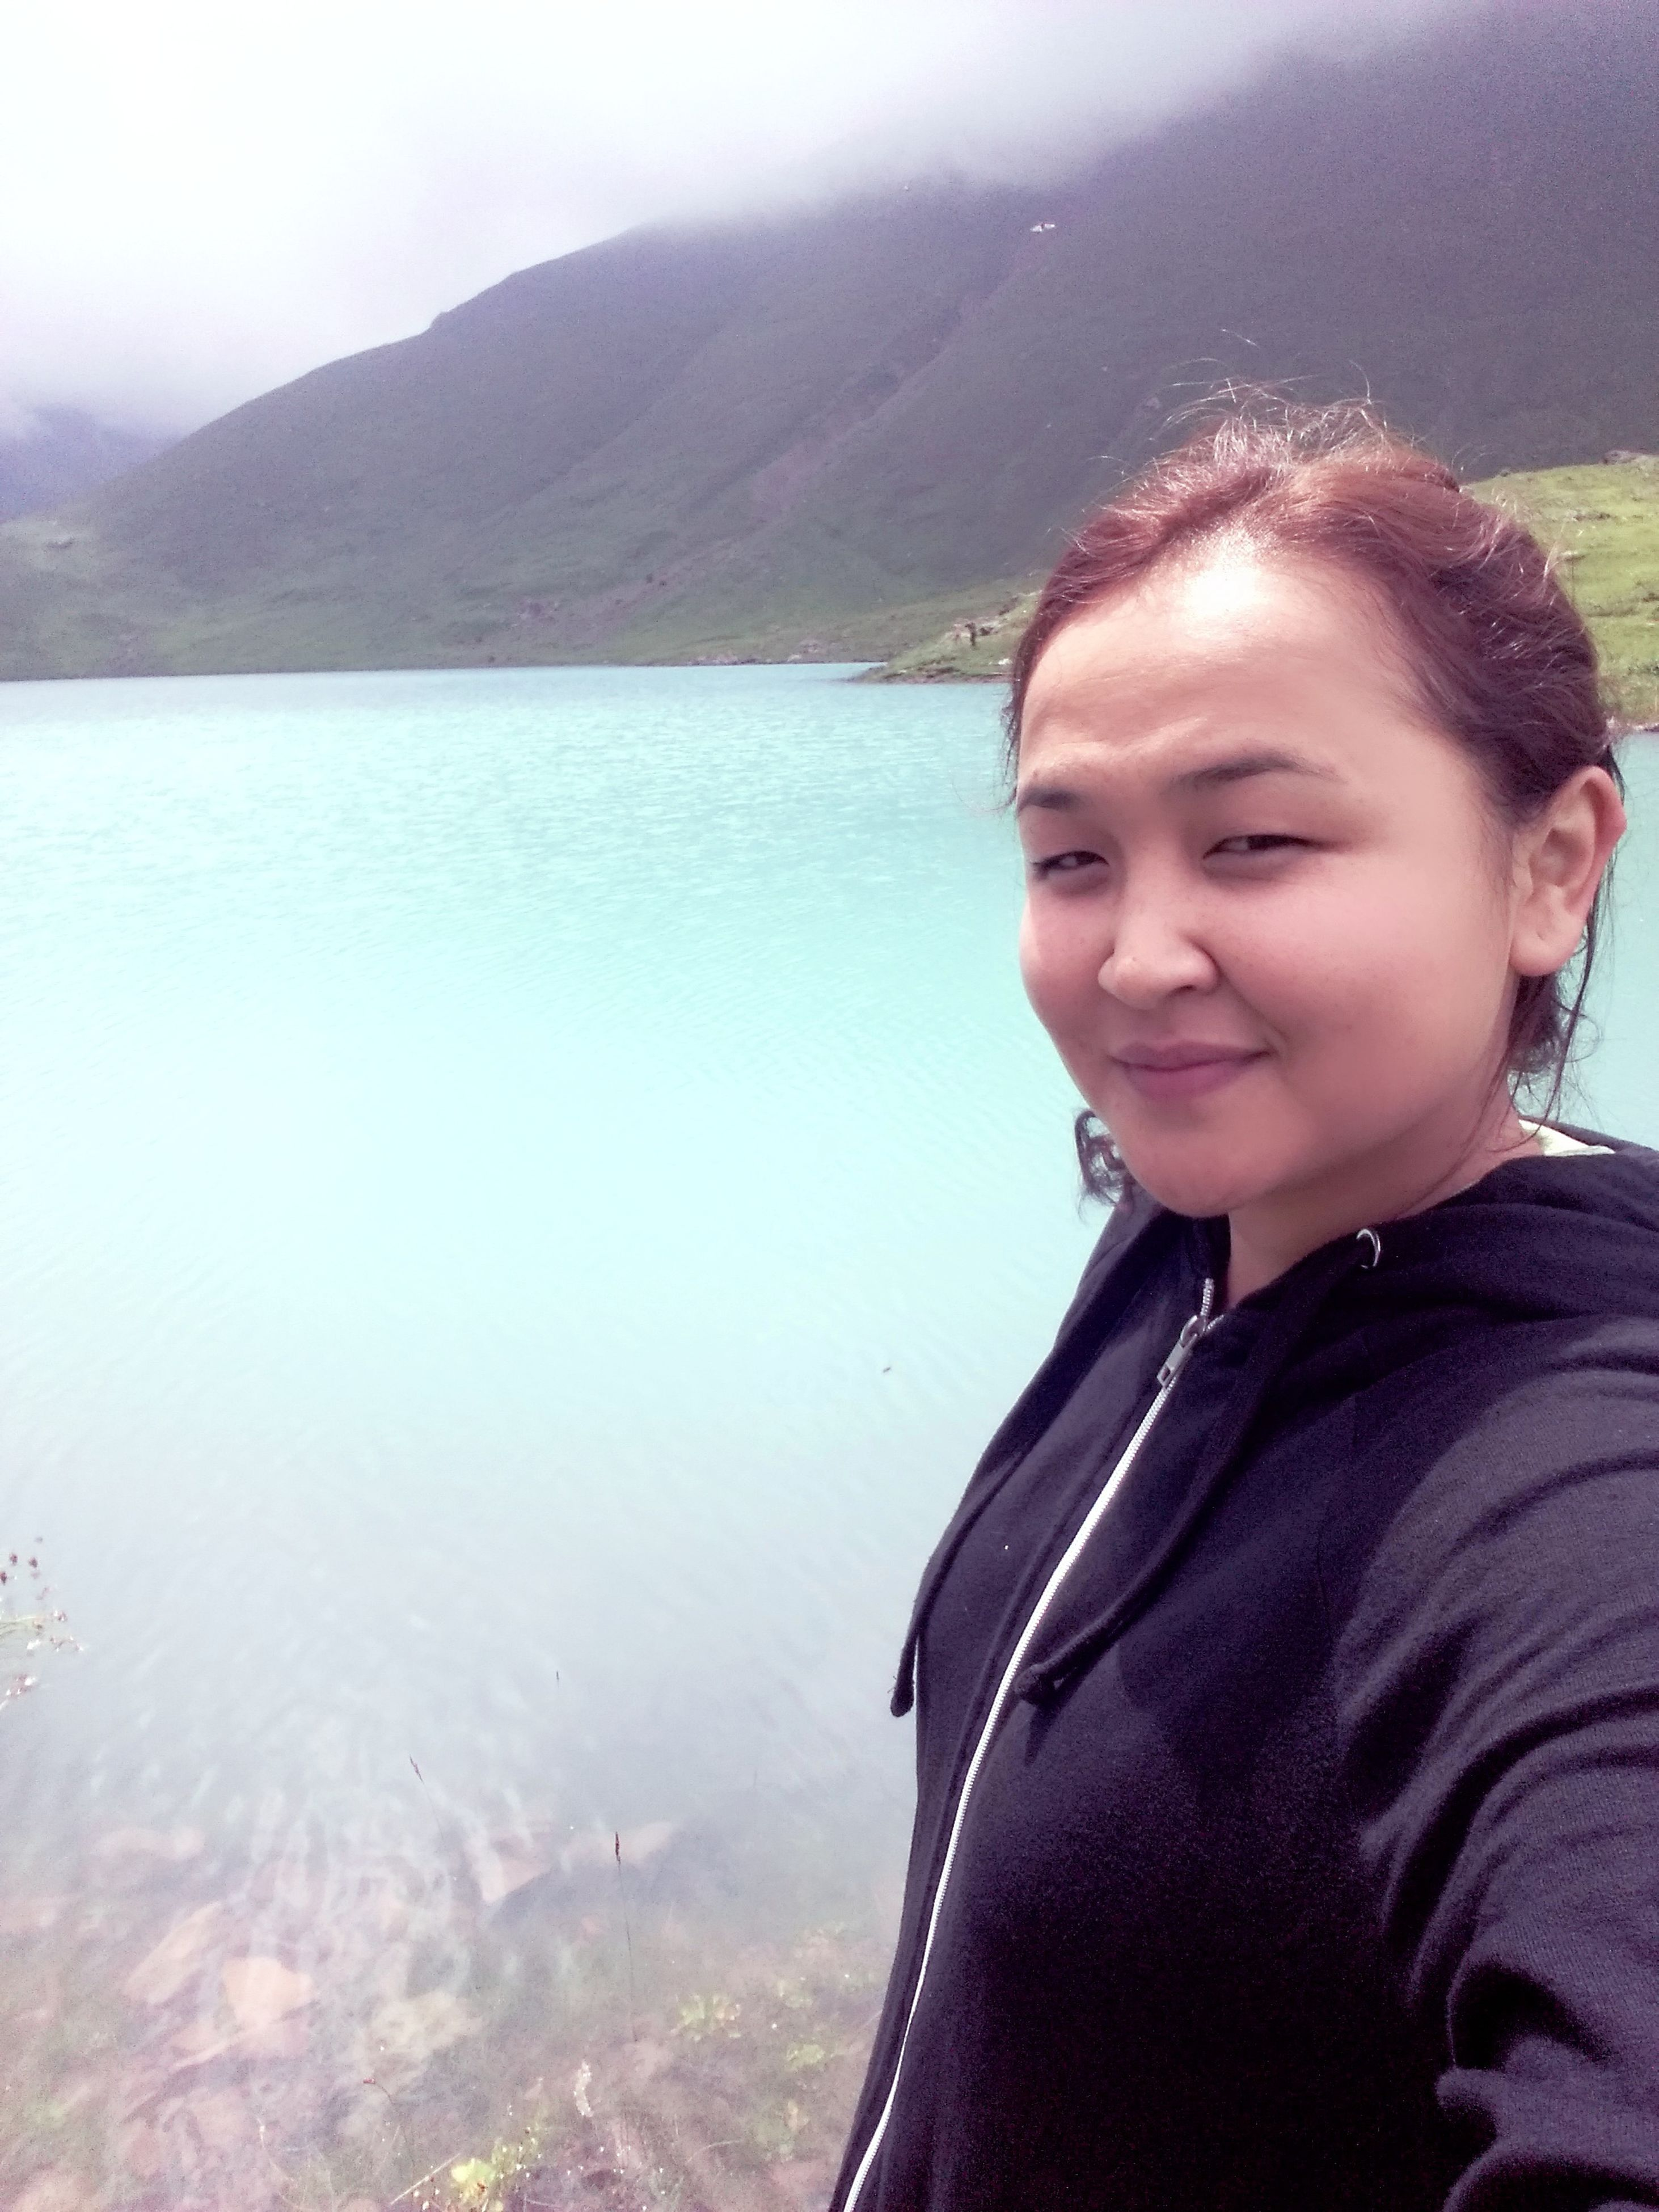 water, mountain, smiling, portrait, warm clothing, looking at camera, leisure activity, lifestyles, jacket, scenics, person, tranquil scene, blue, mountain range, tranquility, nature, beauty in nature, day, young adult, vacations, non-urban scene